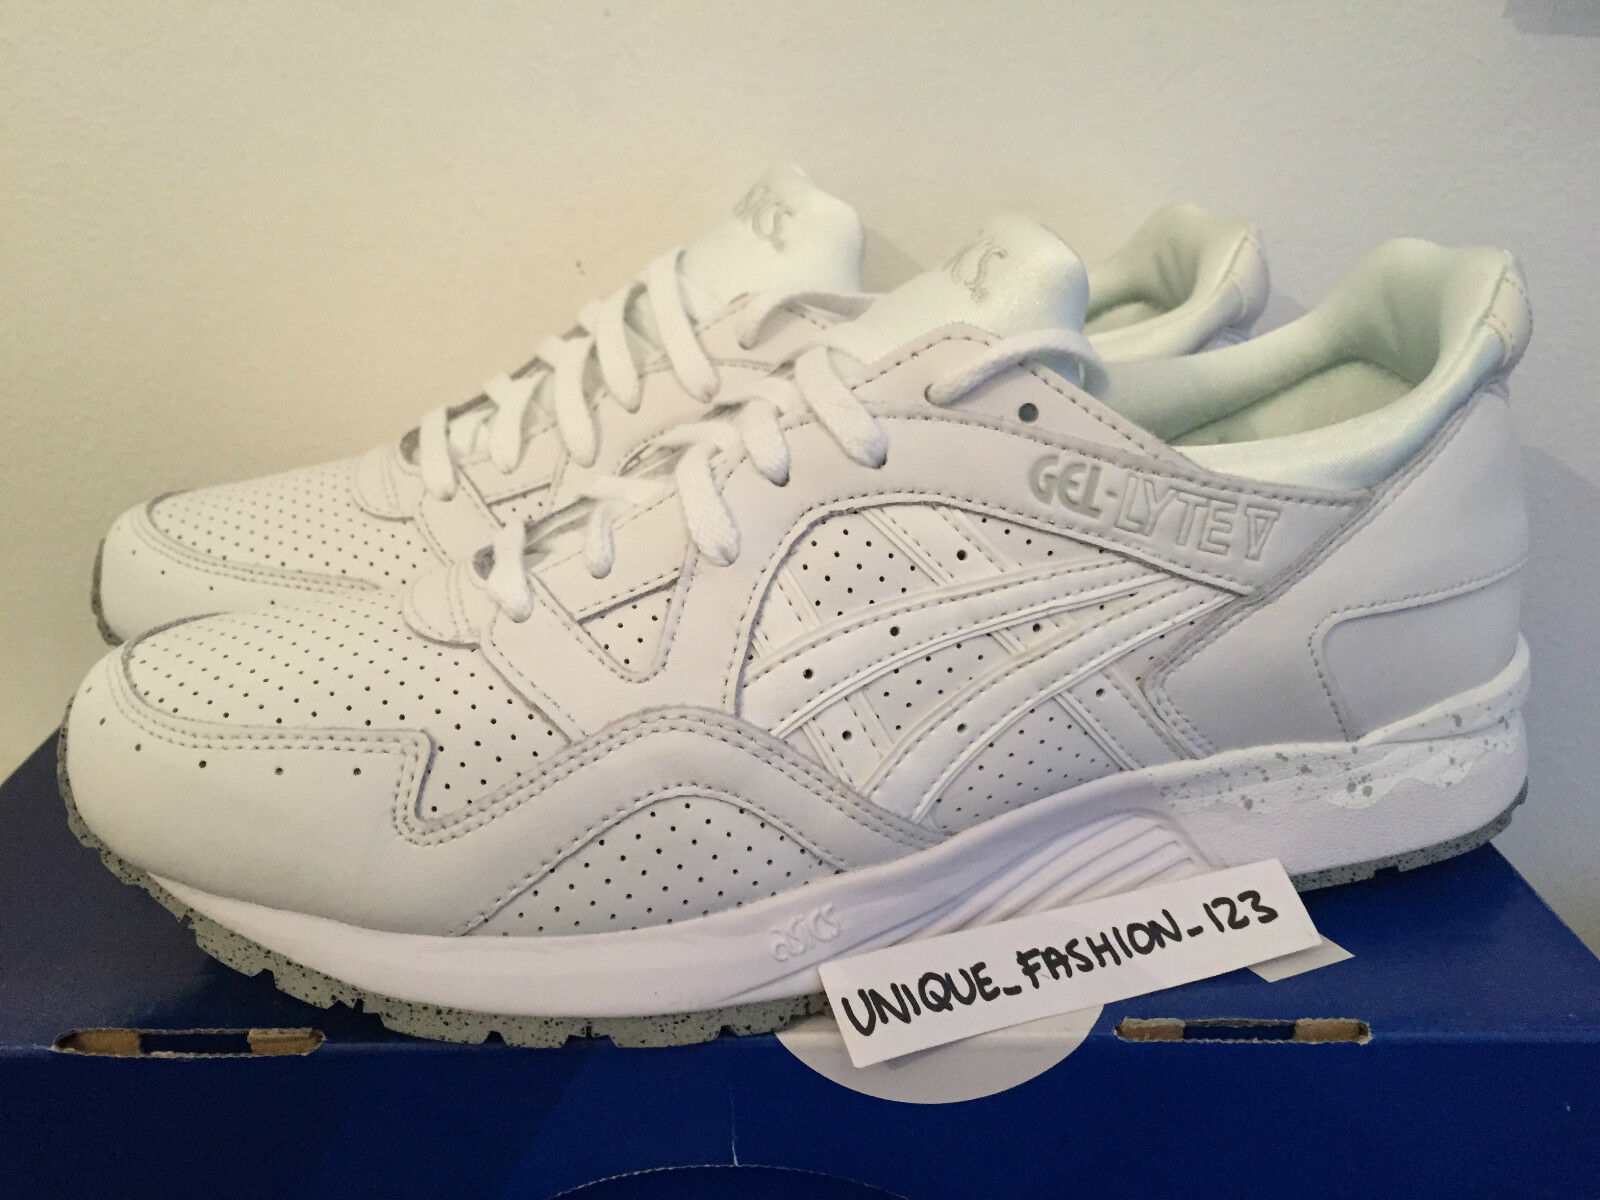 ASICS GEL LYTE V 5 5 5 TRIPLE Weiß LEATHER US 11.5 UK 10.5 45 PALE MINT SPECKLE e24c30